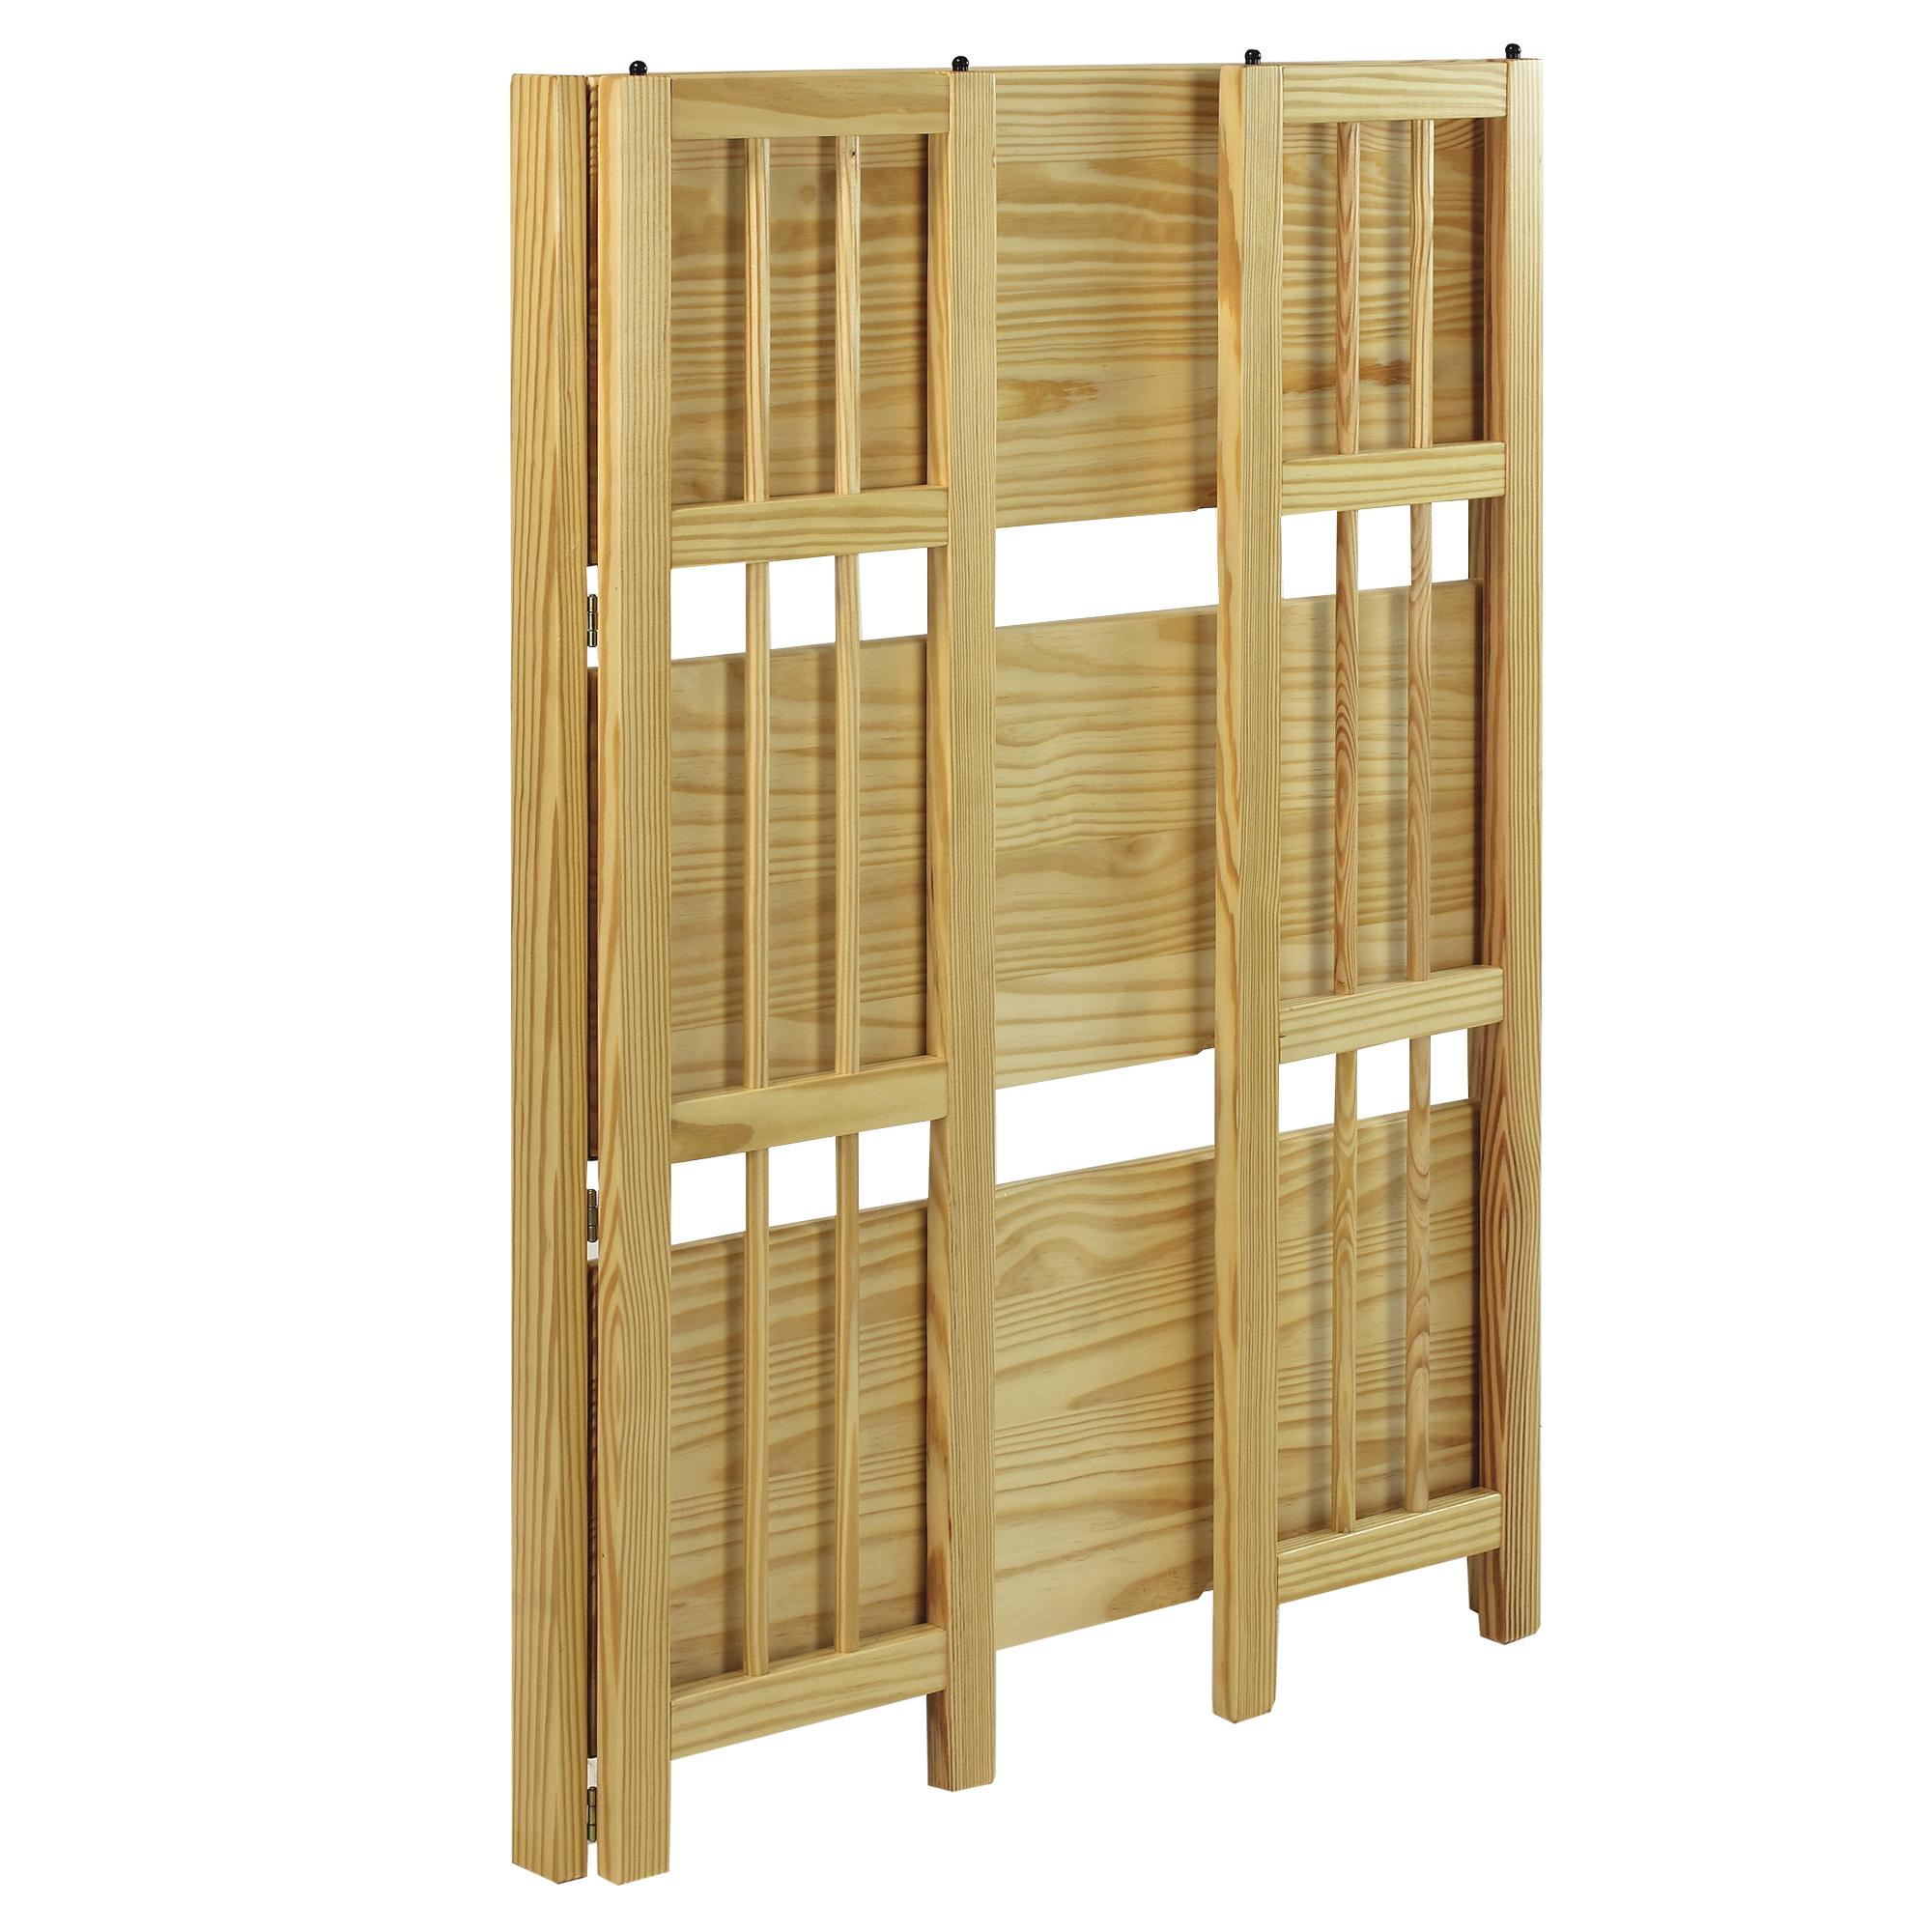 Aug 11,  · Casual Home 3 Shelf Folding Stackable Bookcase, Natural in stock. We can help you find cheap prices of Casual Home 3 Shelf Folding Stackable Bookcase, Natural. Category.